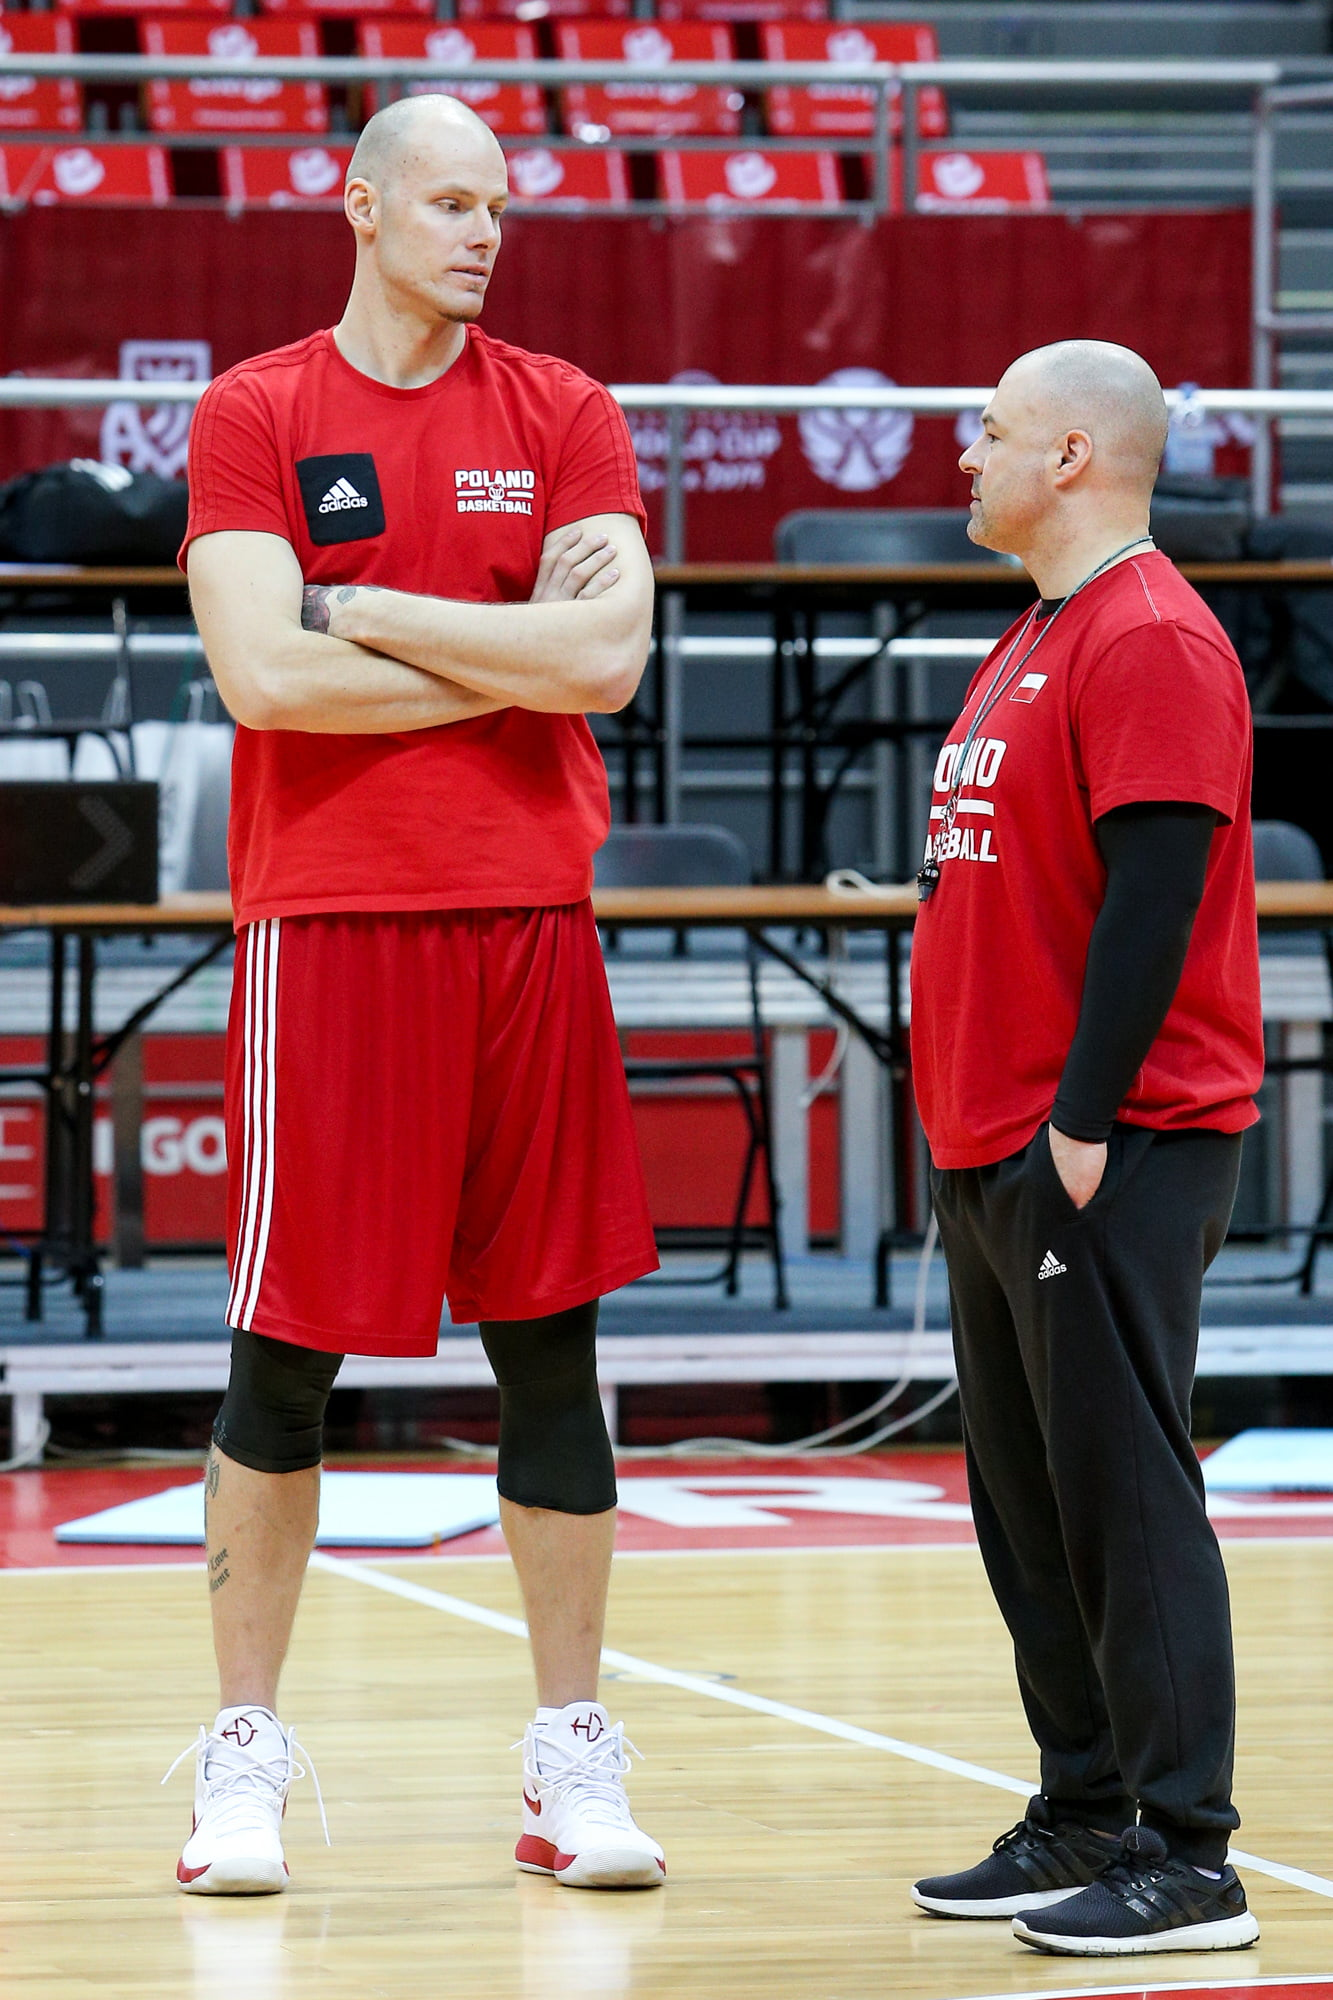 Gdansk, 24.02.2019 KOSZYKOWKA MEZCZYZN REPREZENTACJA POLSKI TRENING ELIMINACJE MISTRZOSTW SWIATA 2019 --- BASKETBALL FIBA POLAND NATIONAL TEAM WORLD CUP QUALIFIERS TRAINING --- NZ maciej lampe , trener mike taylor coach , FOT. GRZEGORZ RADTKE / 058sport.pl / NEWSPIX.PL --- Newspix.pl *** Local Caption *** www.newspix.pl mail us: info@newspix.pl call us: 0048 022 23 22 222 --- Polish Picture Agency by Ringier Axel Springer Poland